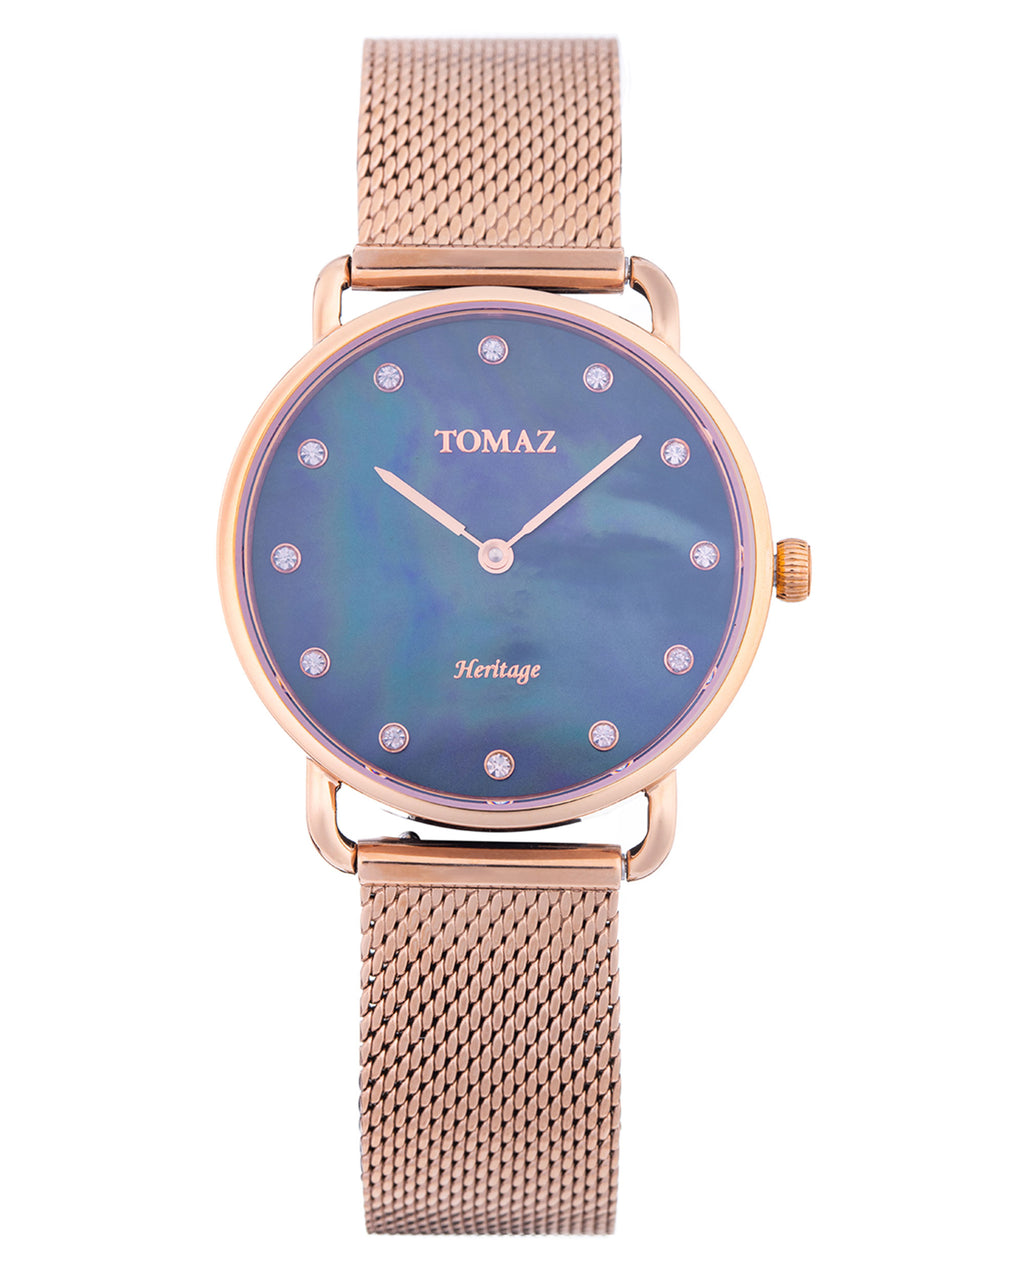 Tomaz Ladies Watch G1L-D12 (Rose Gold/Dark Blue Marble)